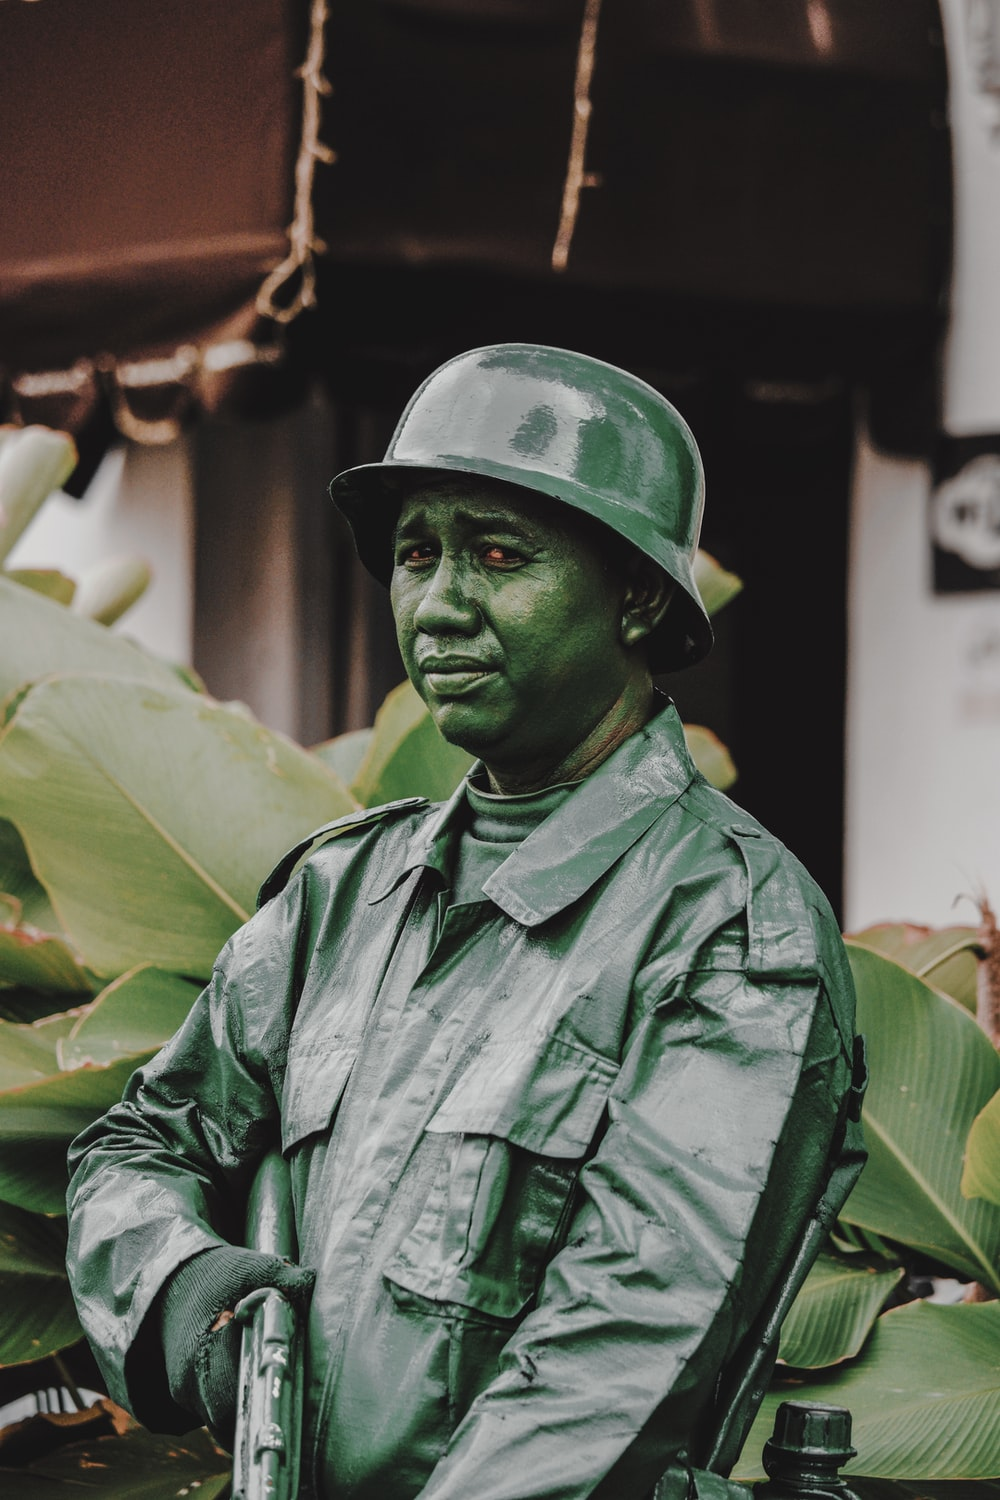 man in military costume standing